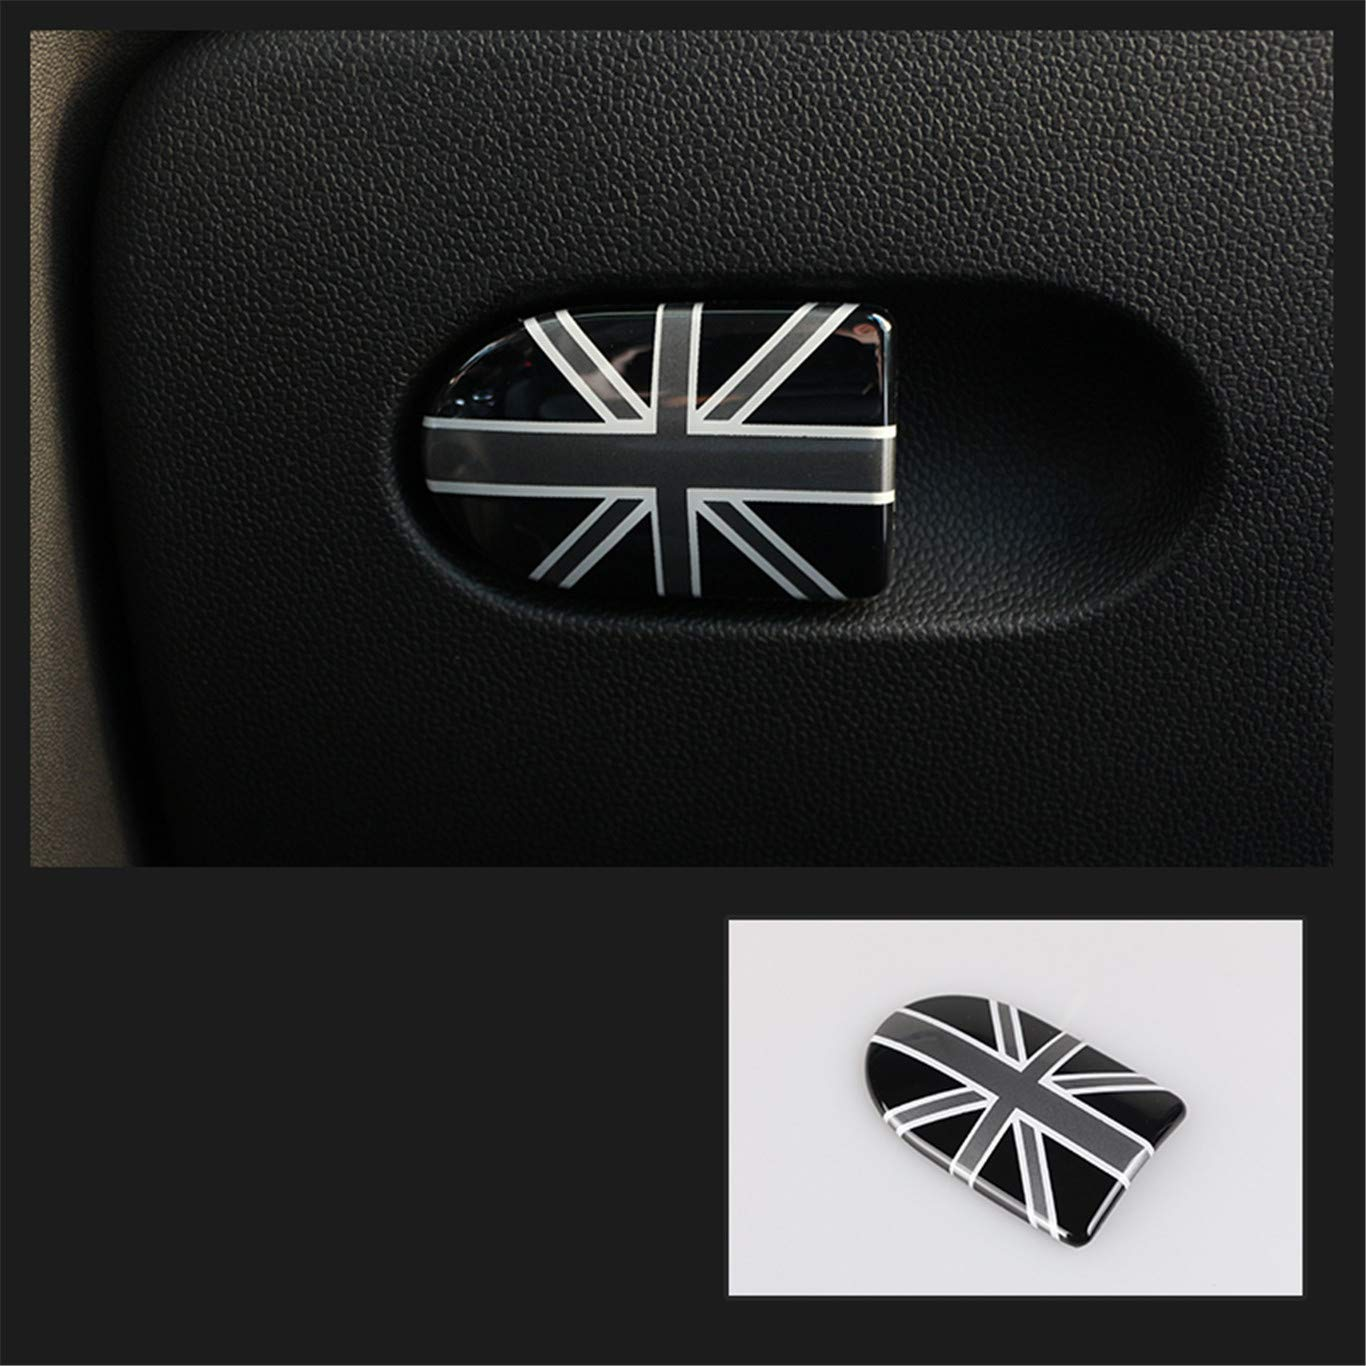 F55 F56 F57, Union Jack Gray Storage Box Handle Door Cover Trim Cap ABS for Mini Cooper F54 Clubman F55 Hardtop F56 Hatchback F57 Covertible F60 Countryman